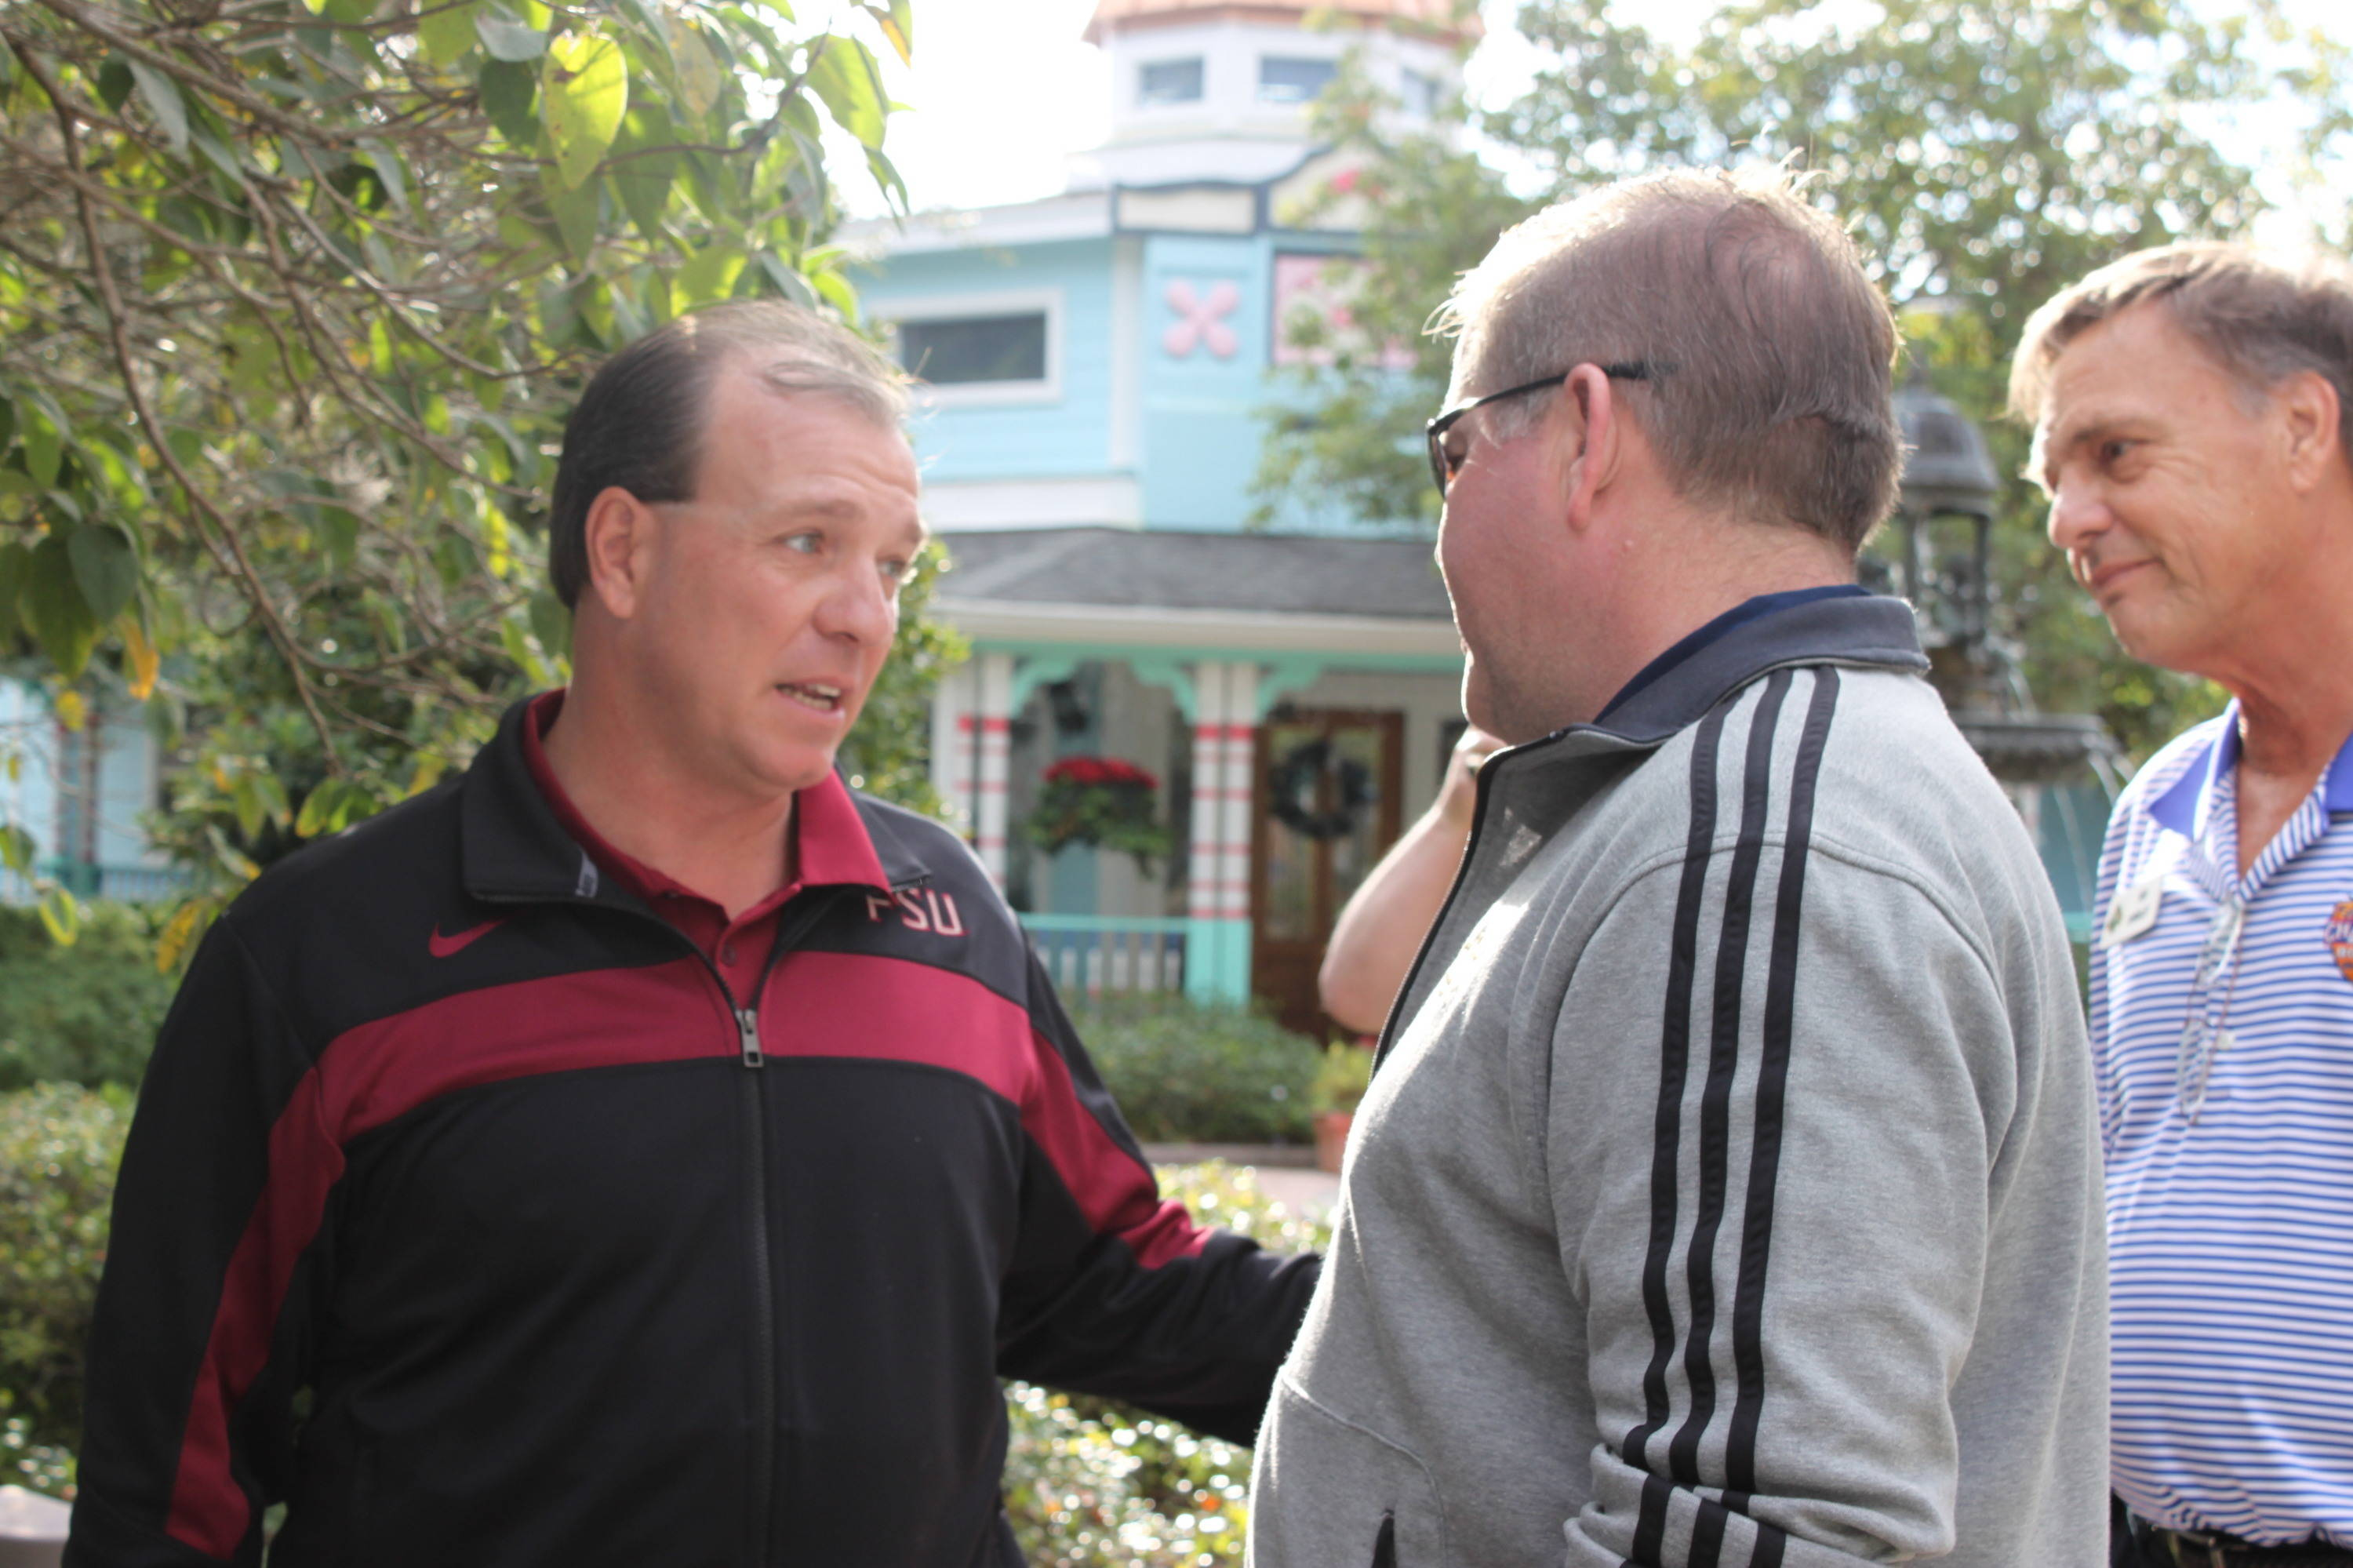 FSU coach Jimbo Fisher shares a word with his Notre Dame counterpart Brian Kelly at the park.